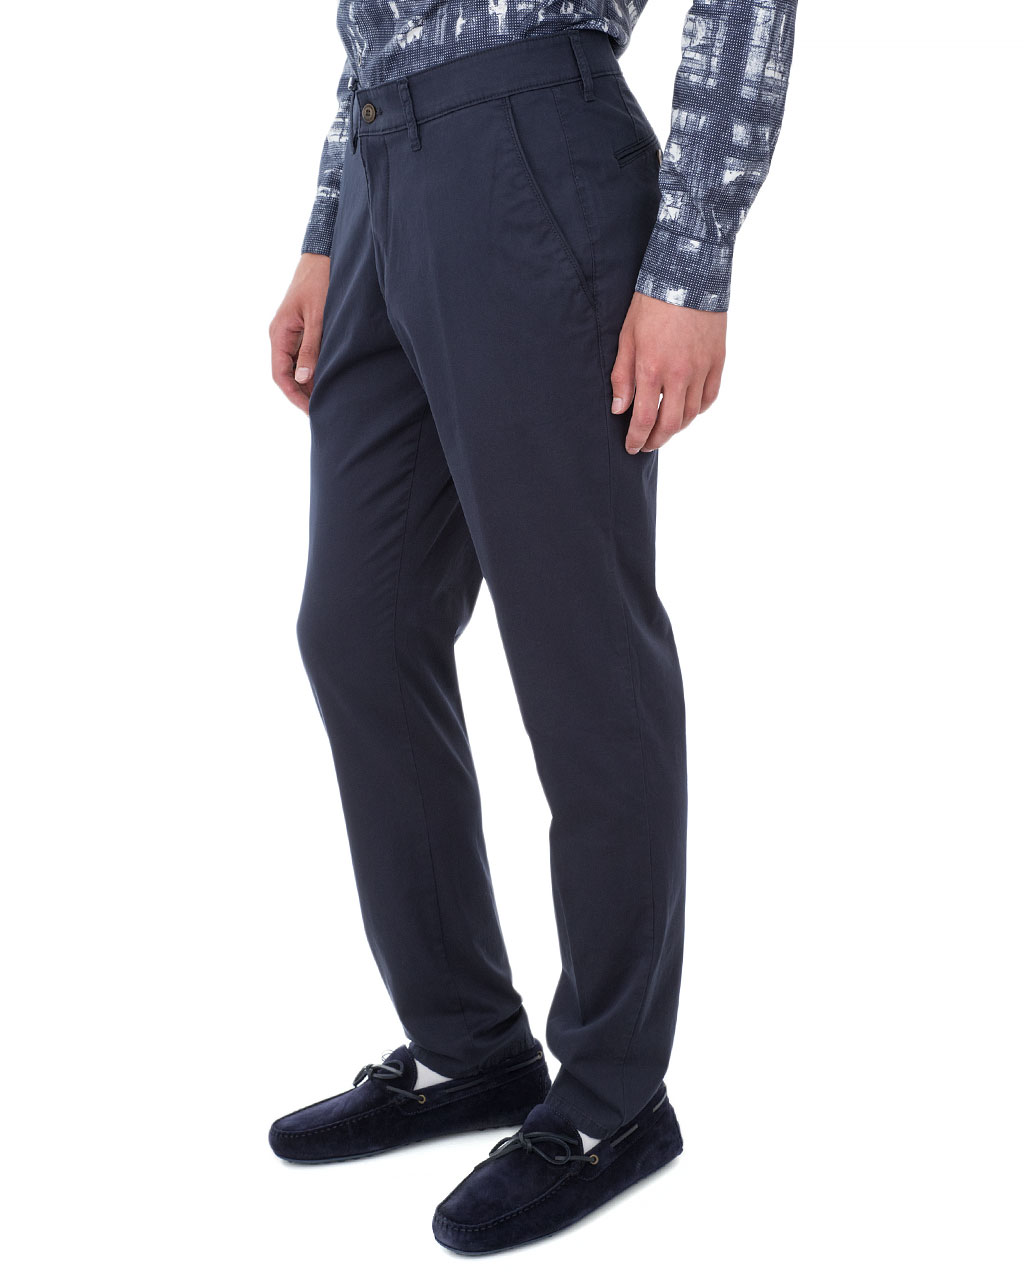 Men's trousers BENNY-8-410941-68/92 (3)